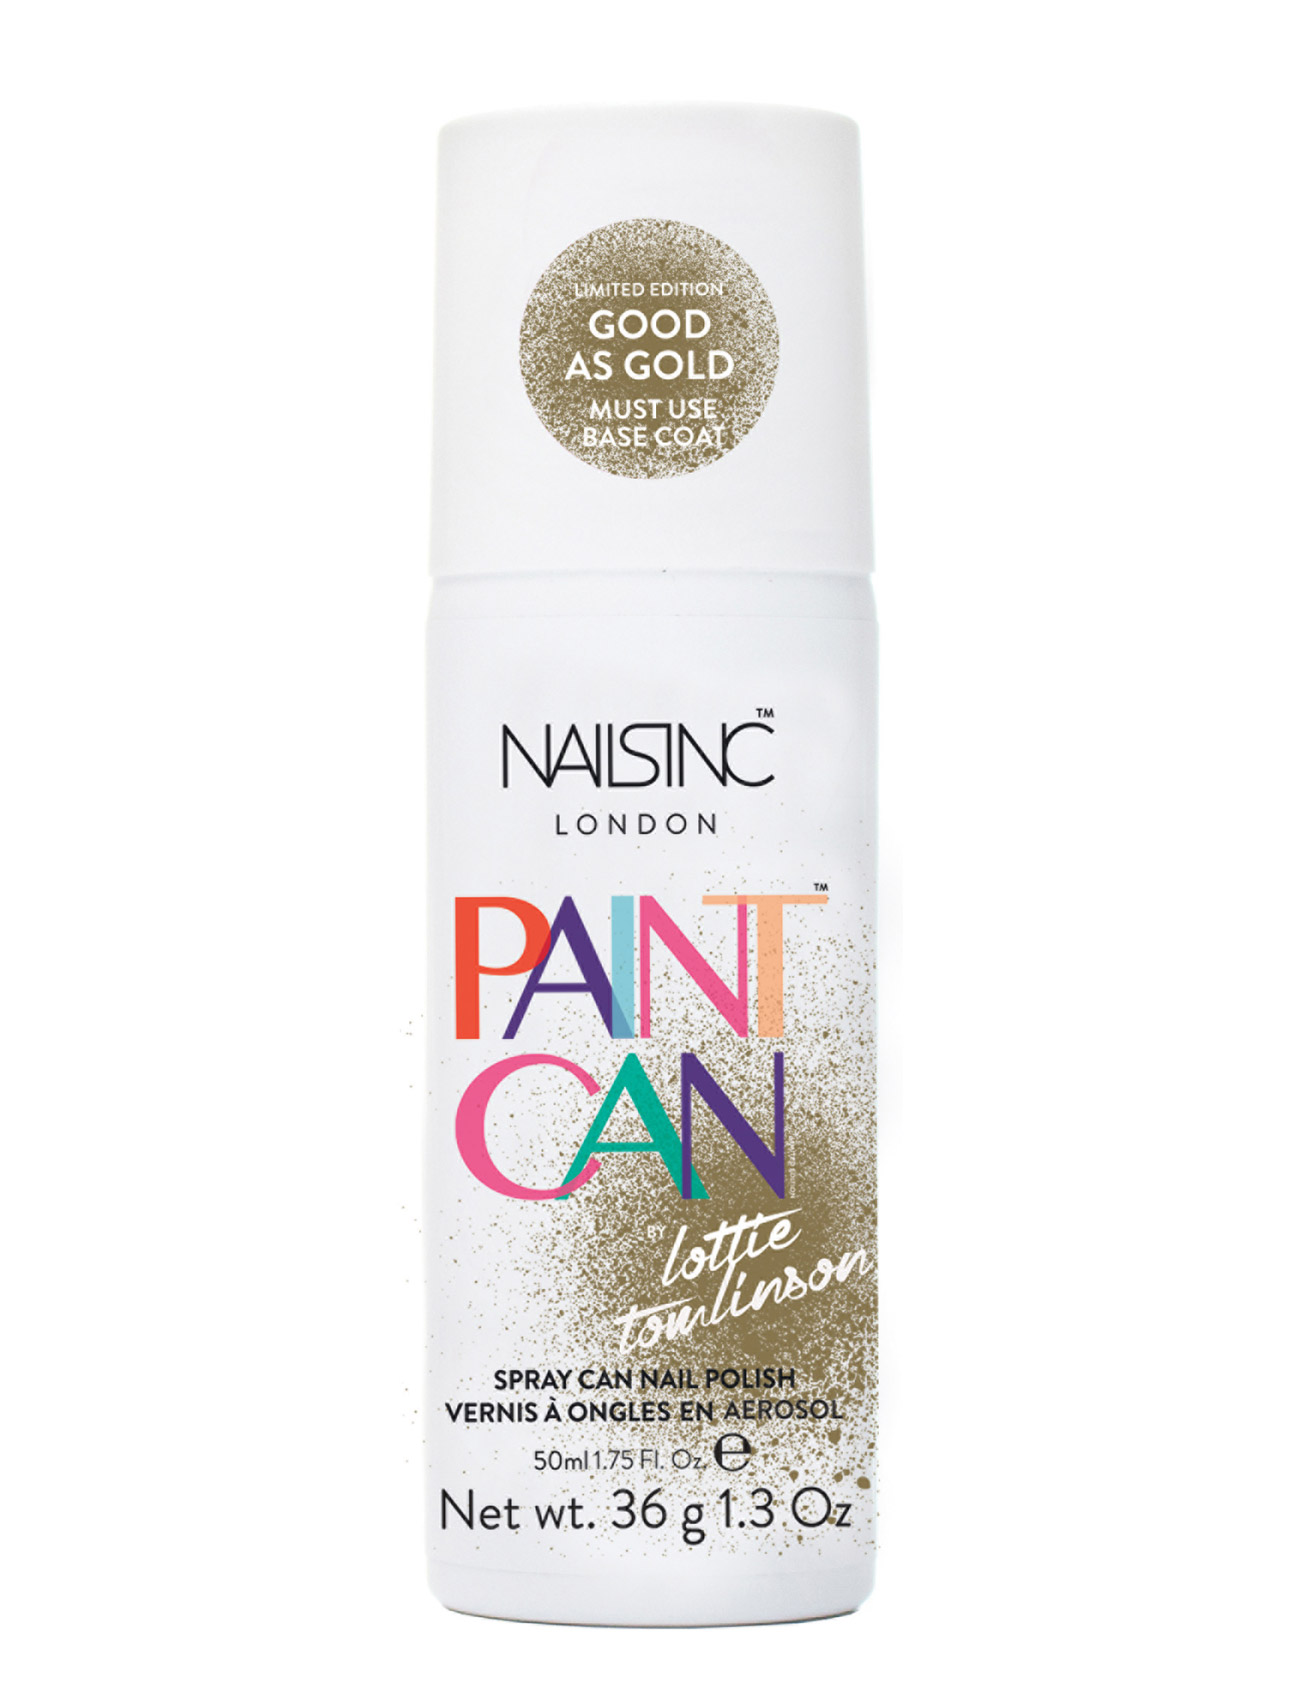 nails inc The paint can- good as gold 50 ml på boozt.com dk